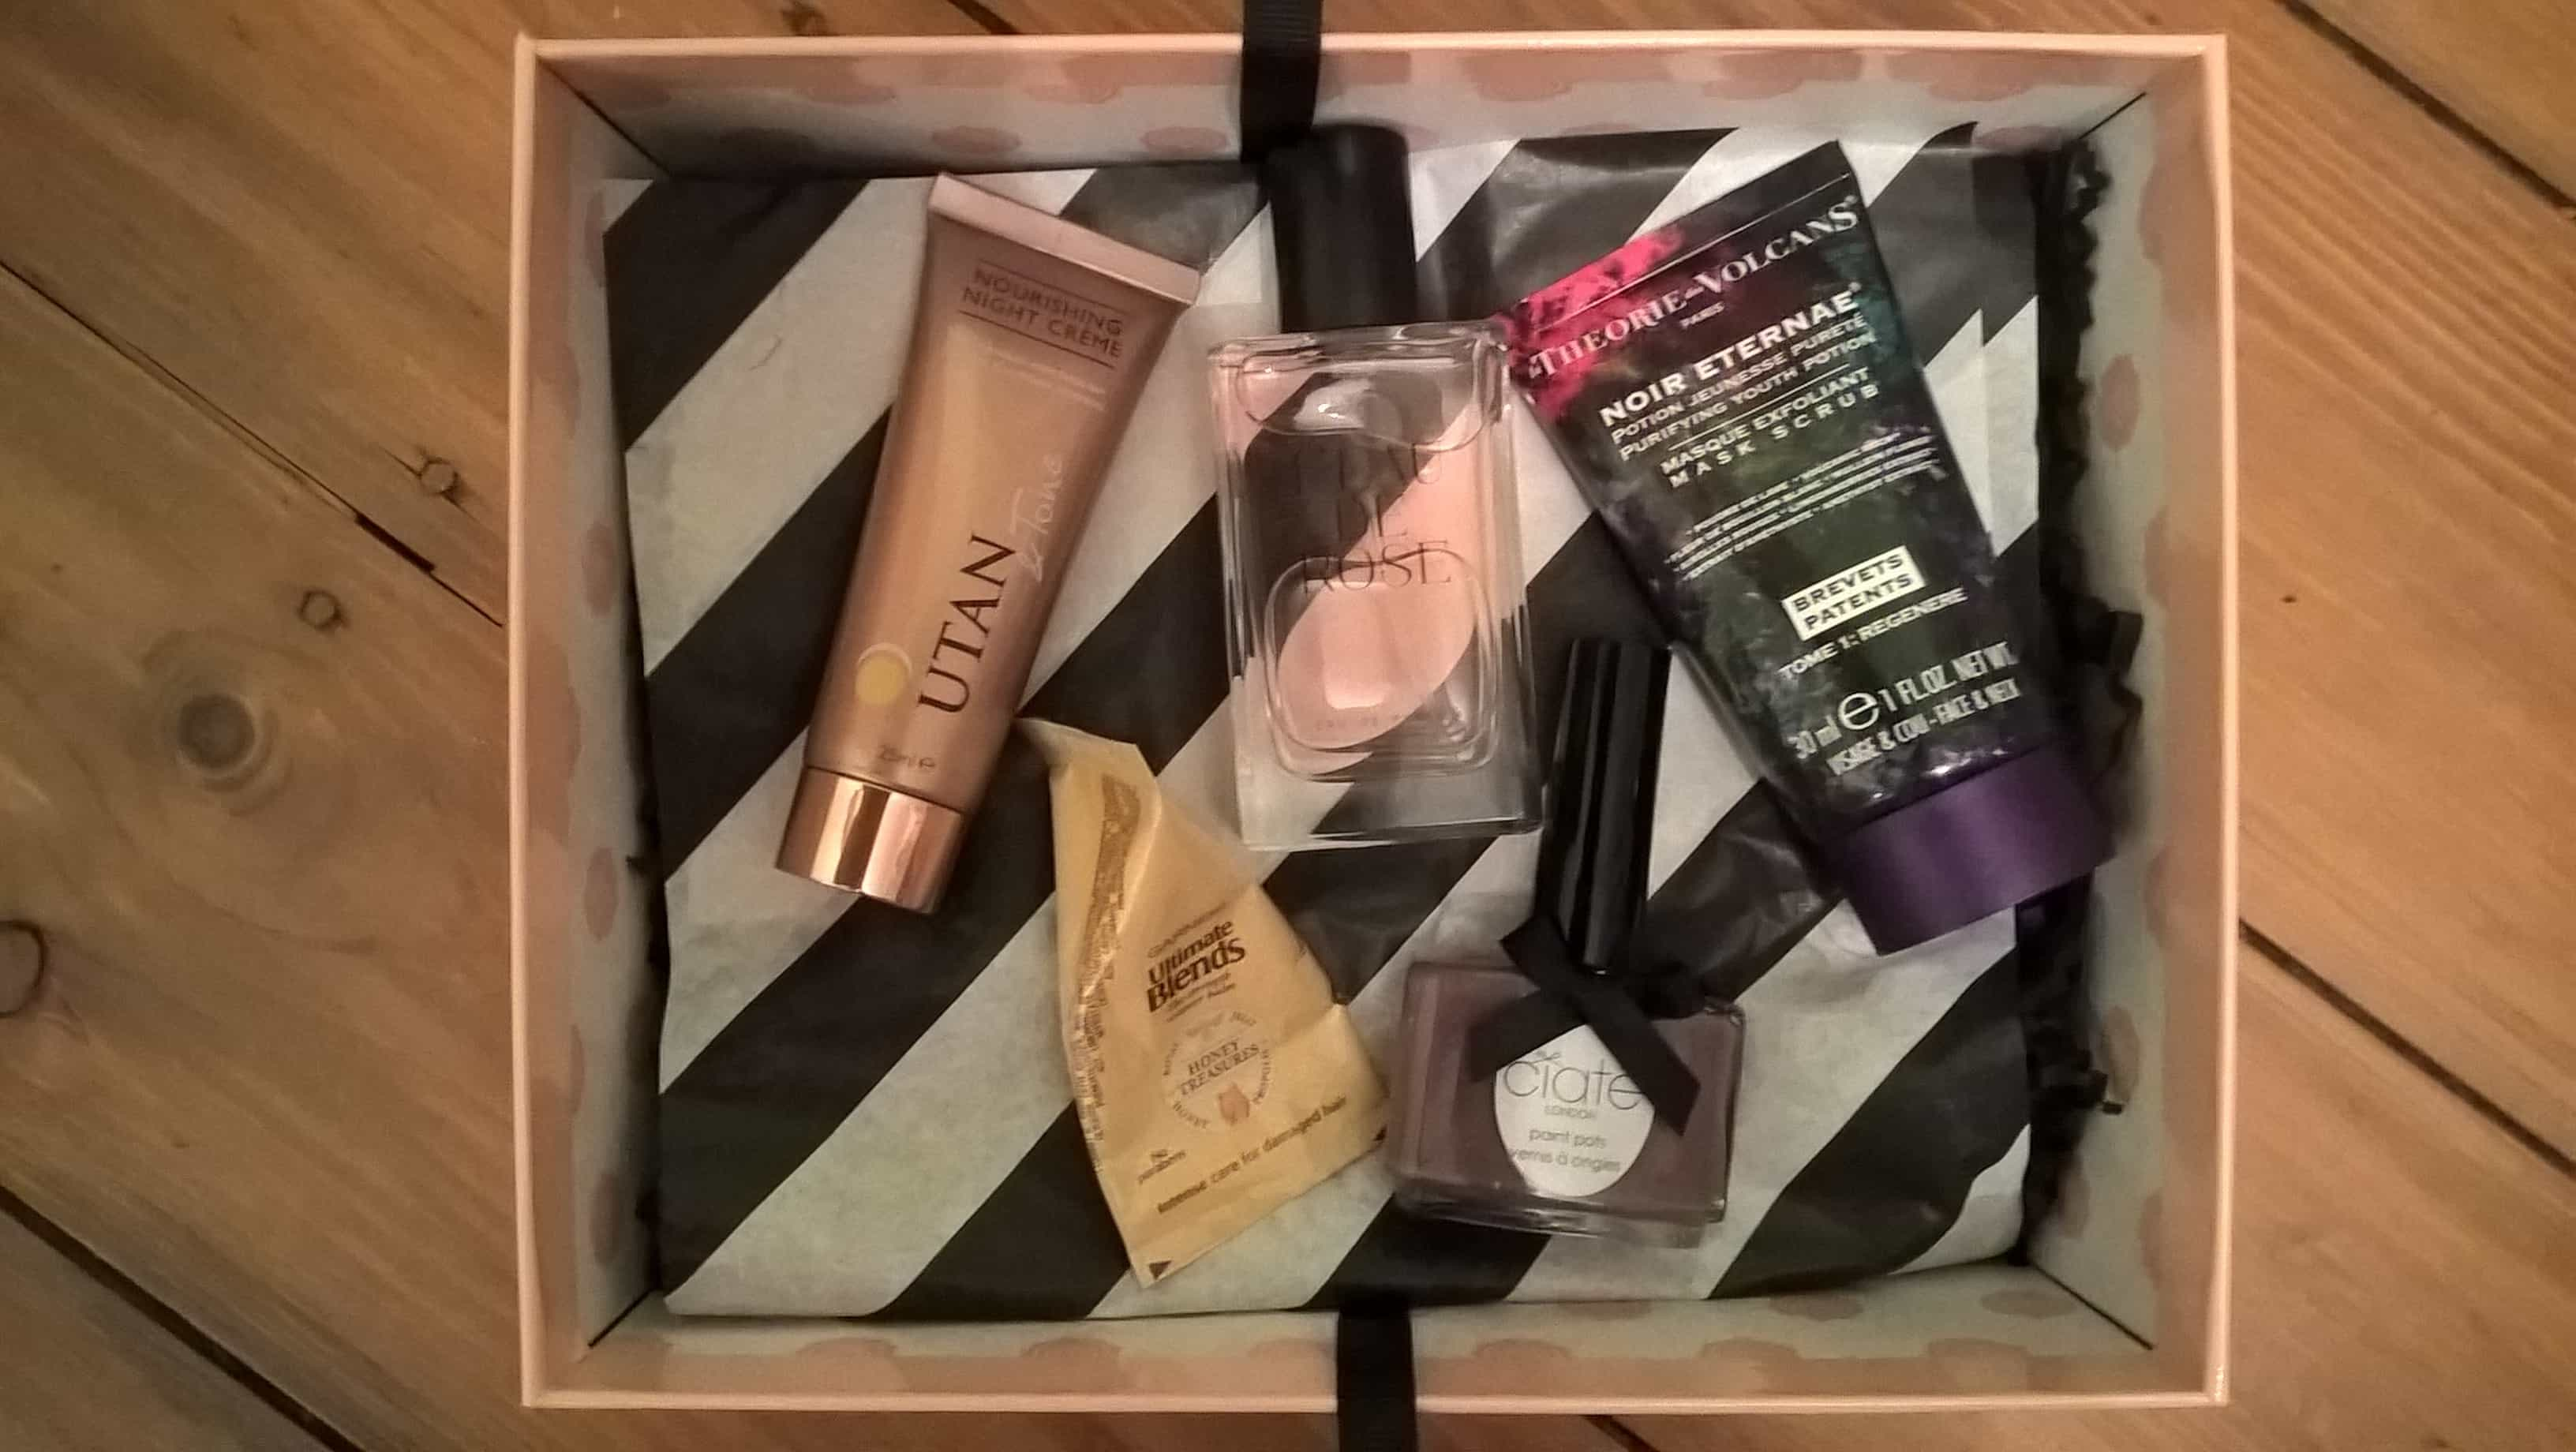 Makeup box subscriptions